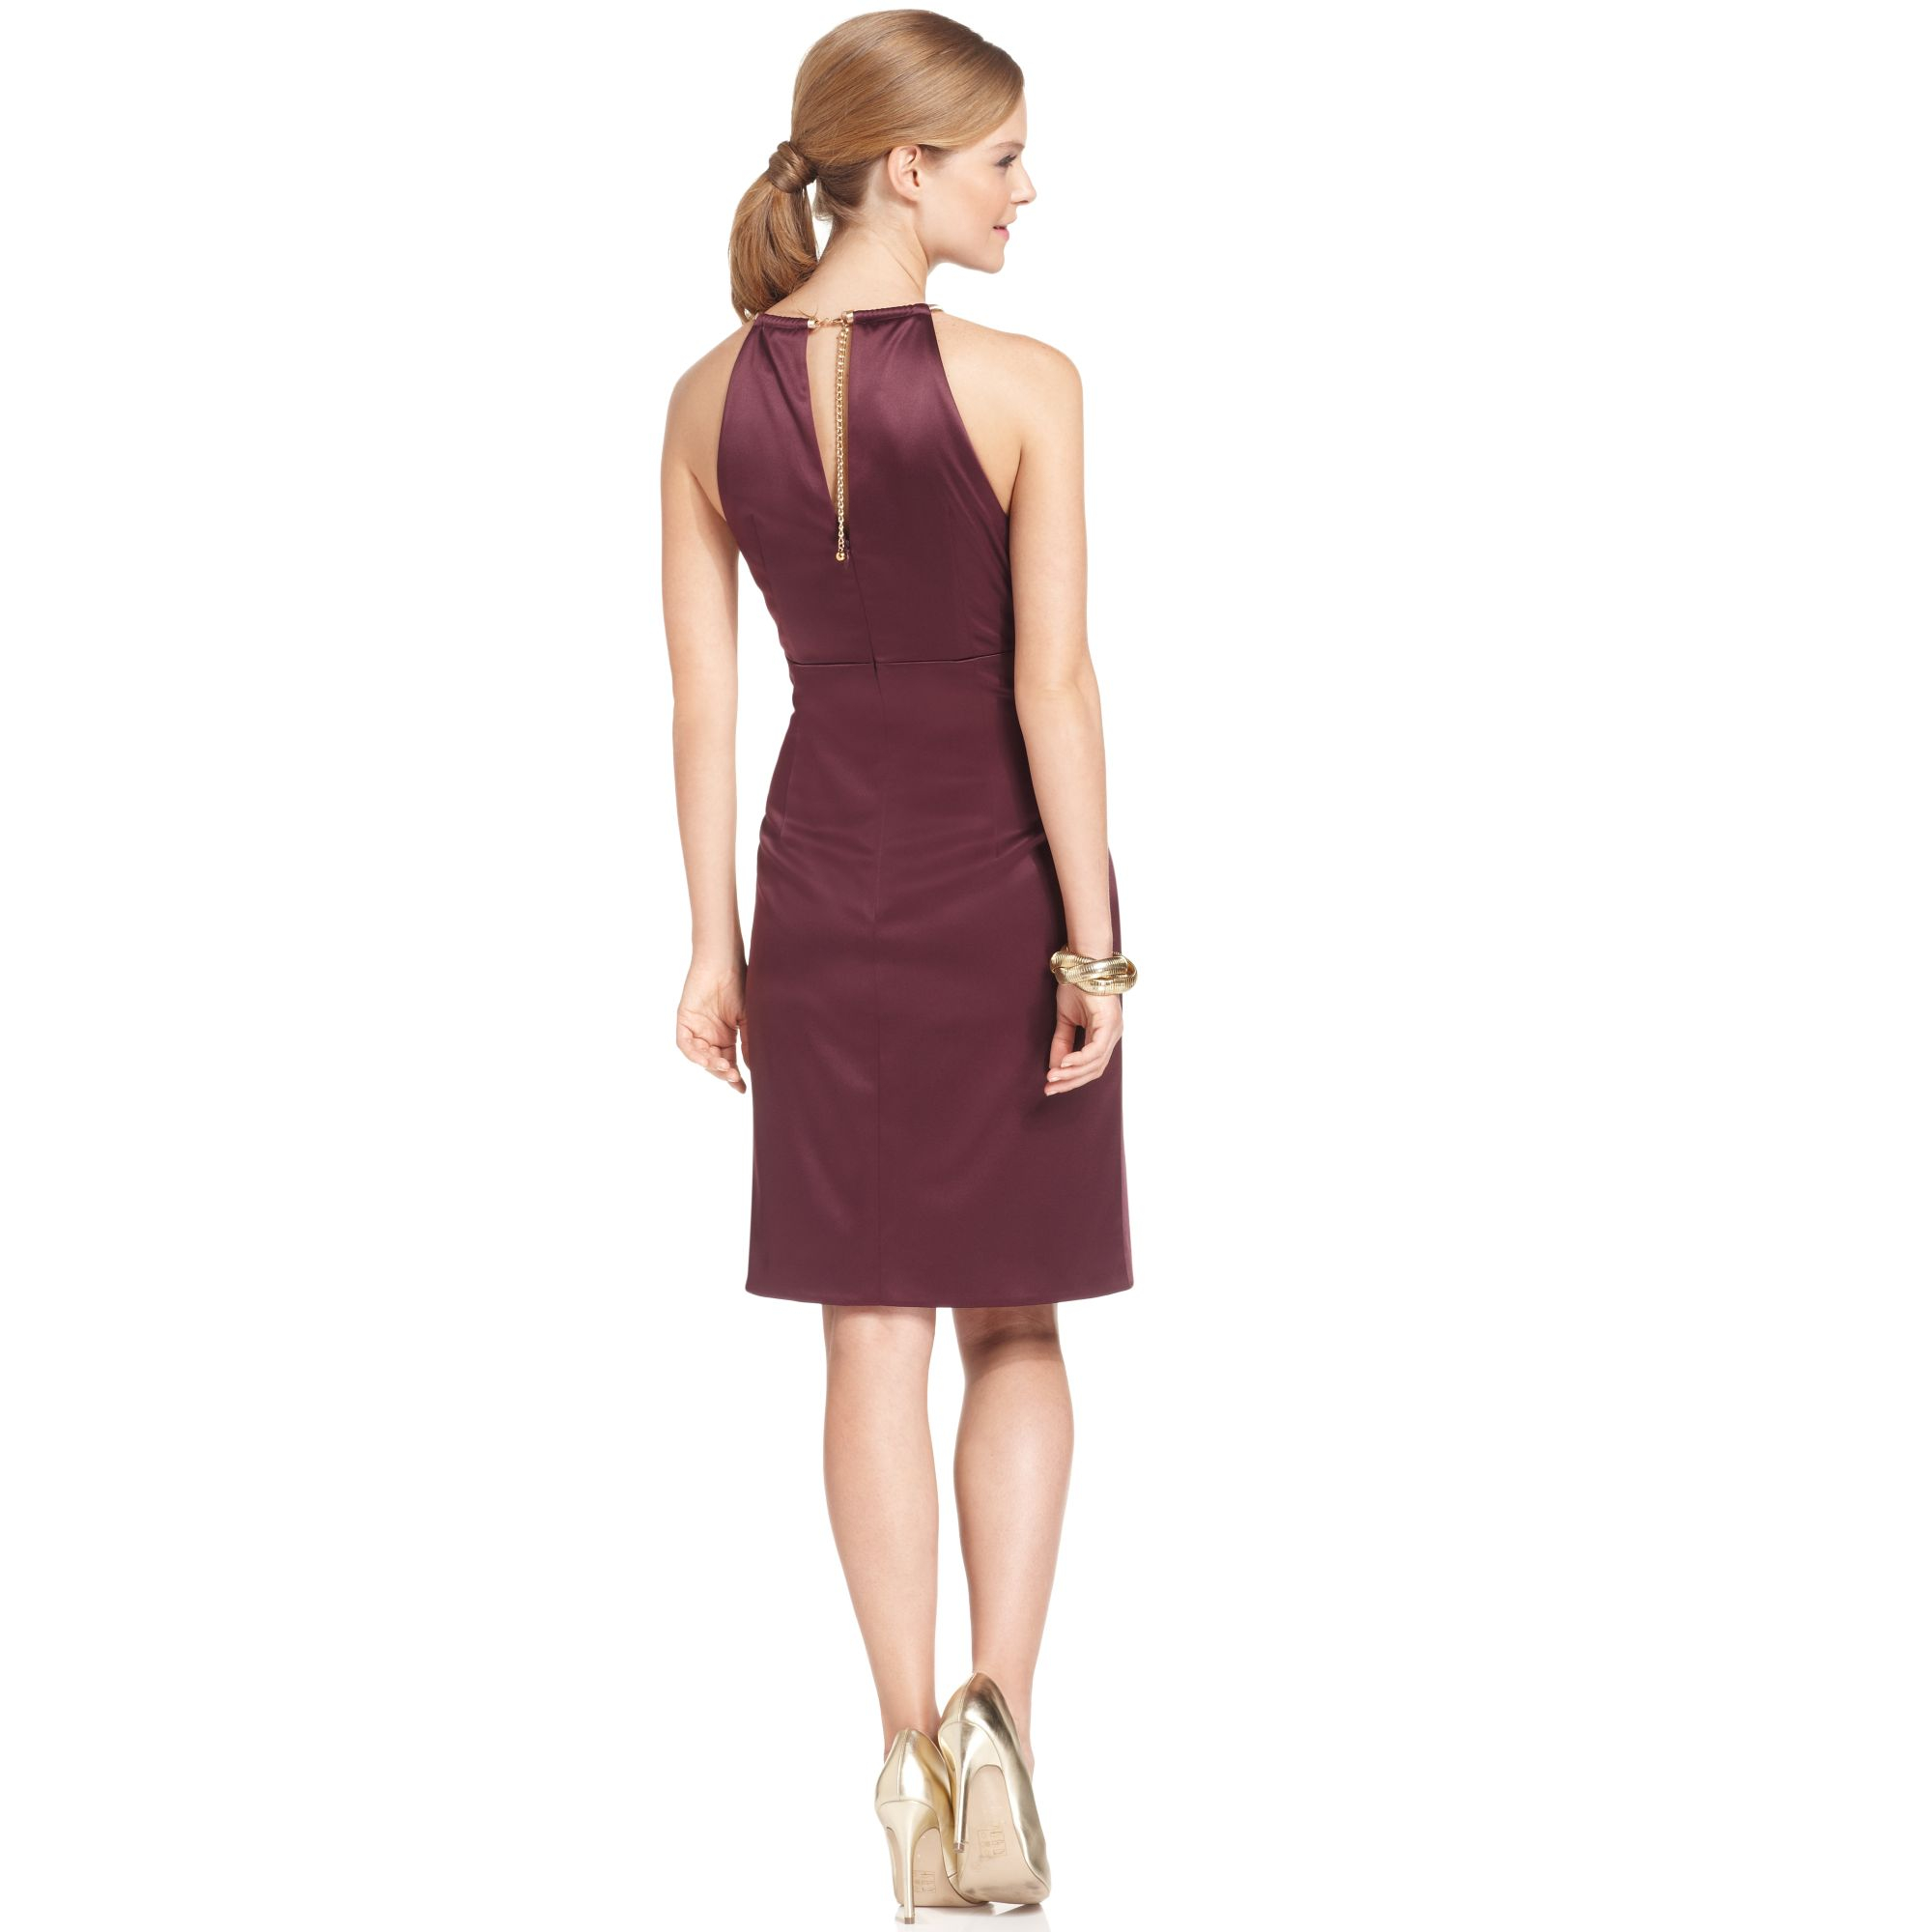 Where to buy eliza j dresses